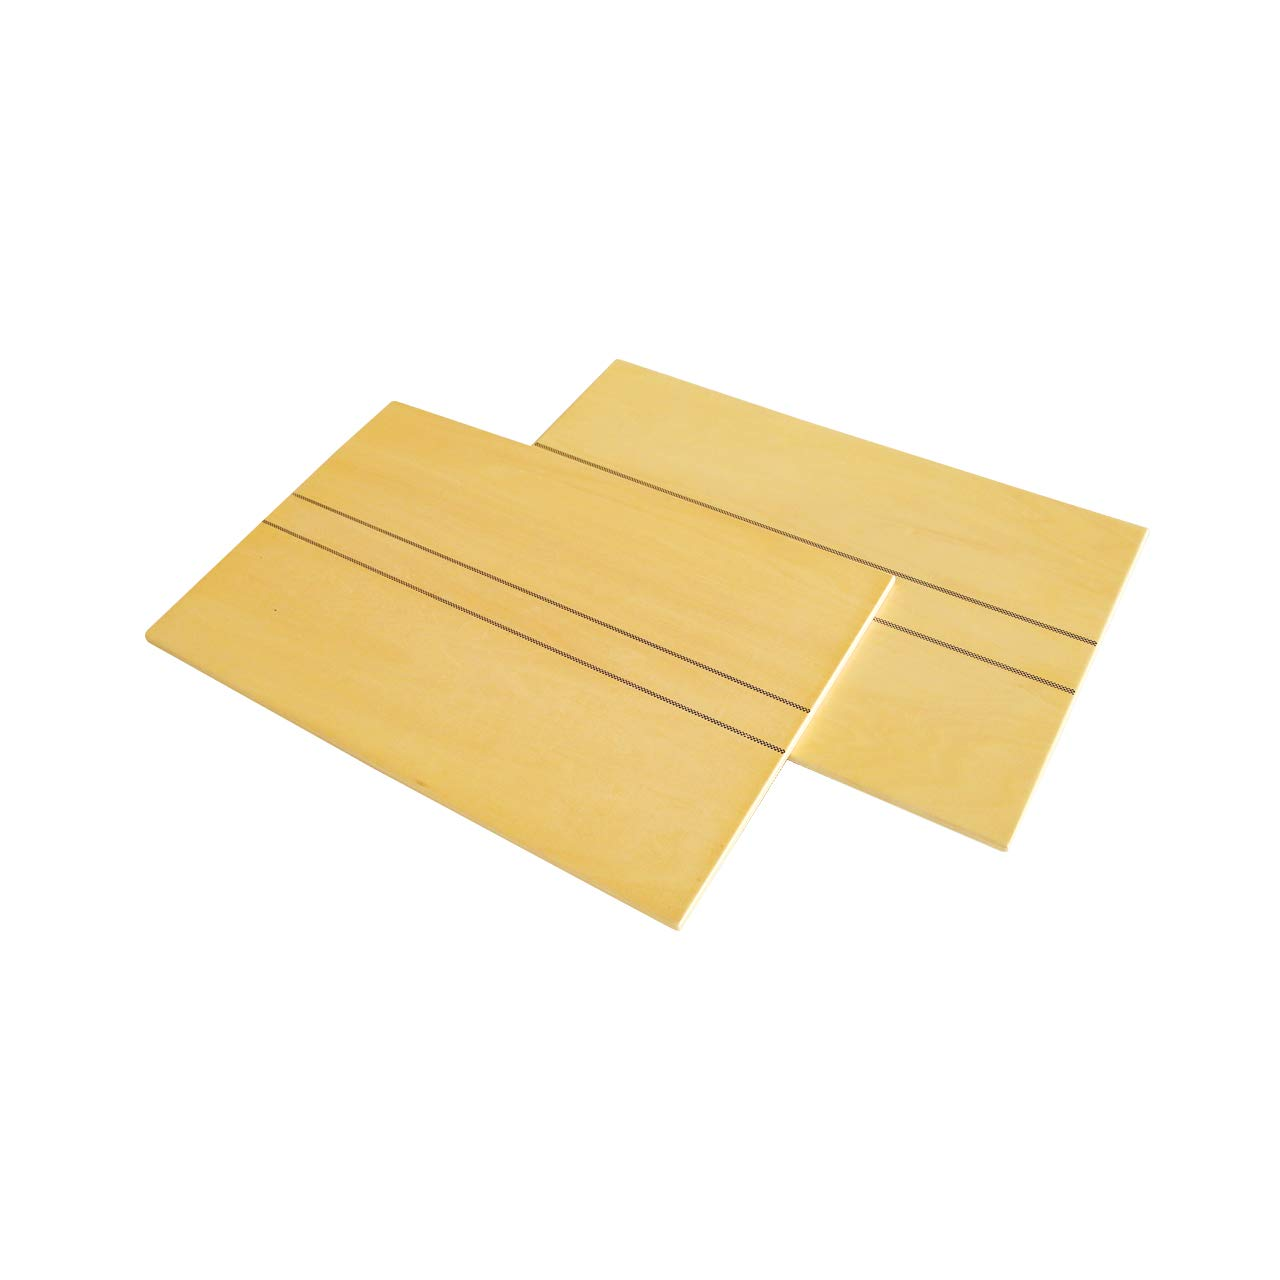 MONTESSORI OUTLET Wooden Boards (2 pcs) by MONTESSORI OUTLET